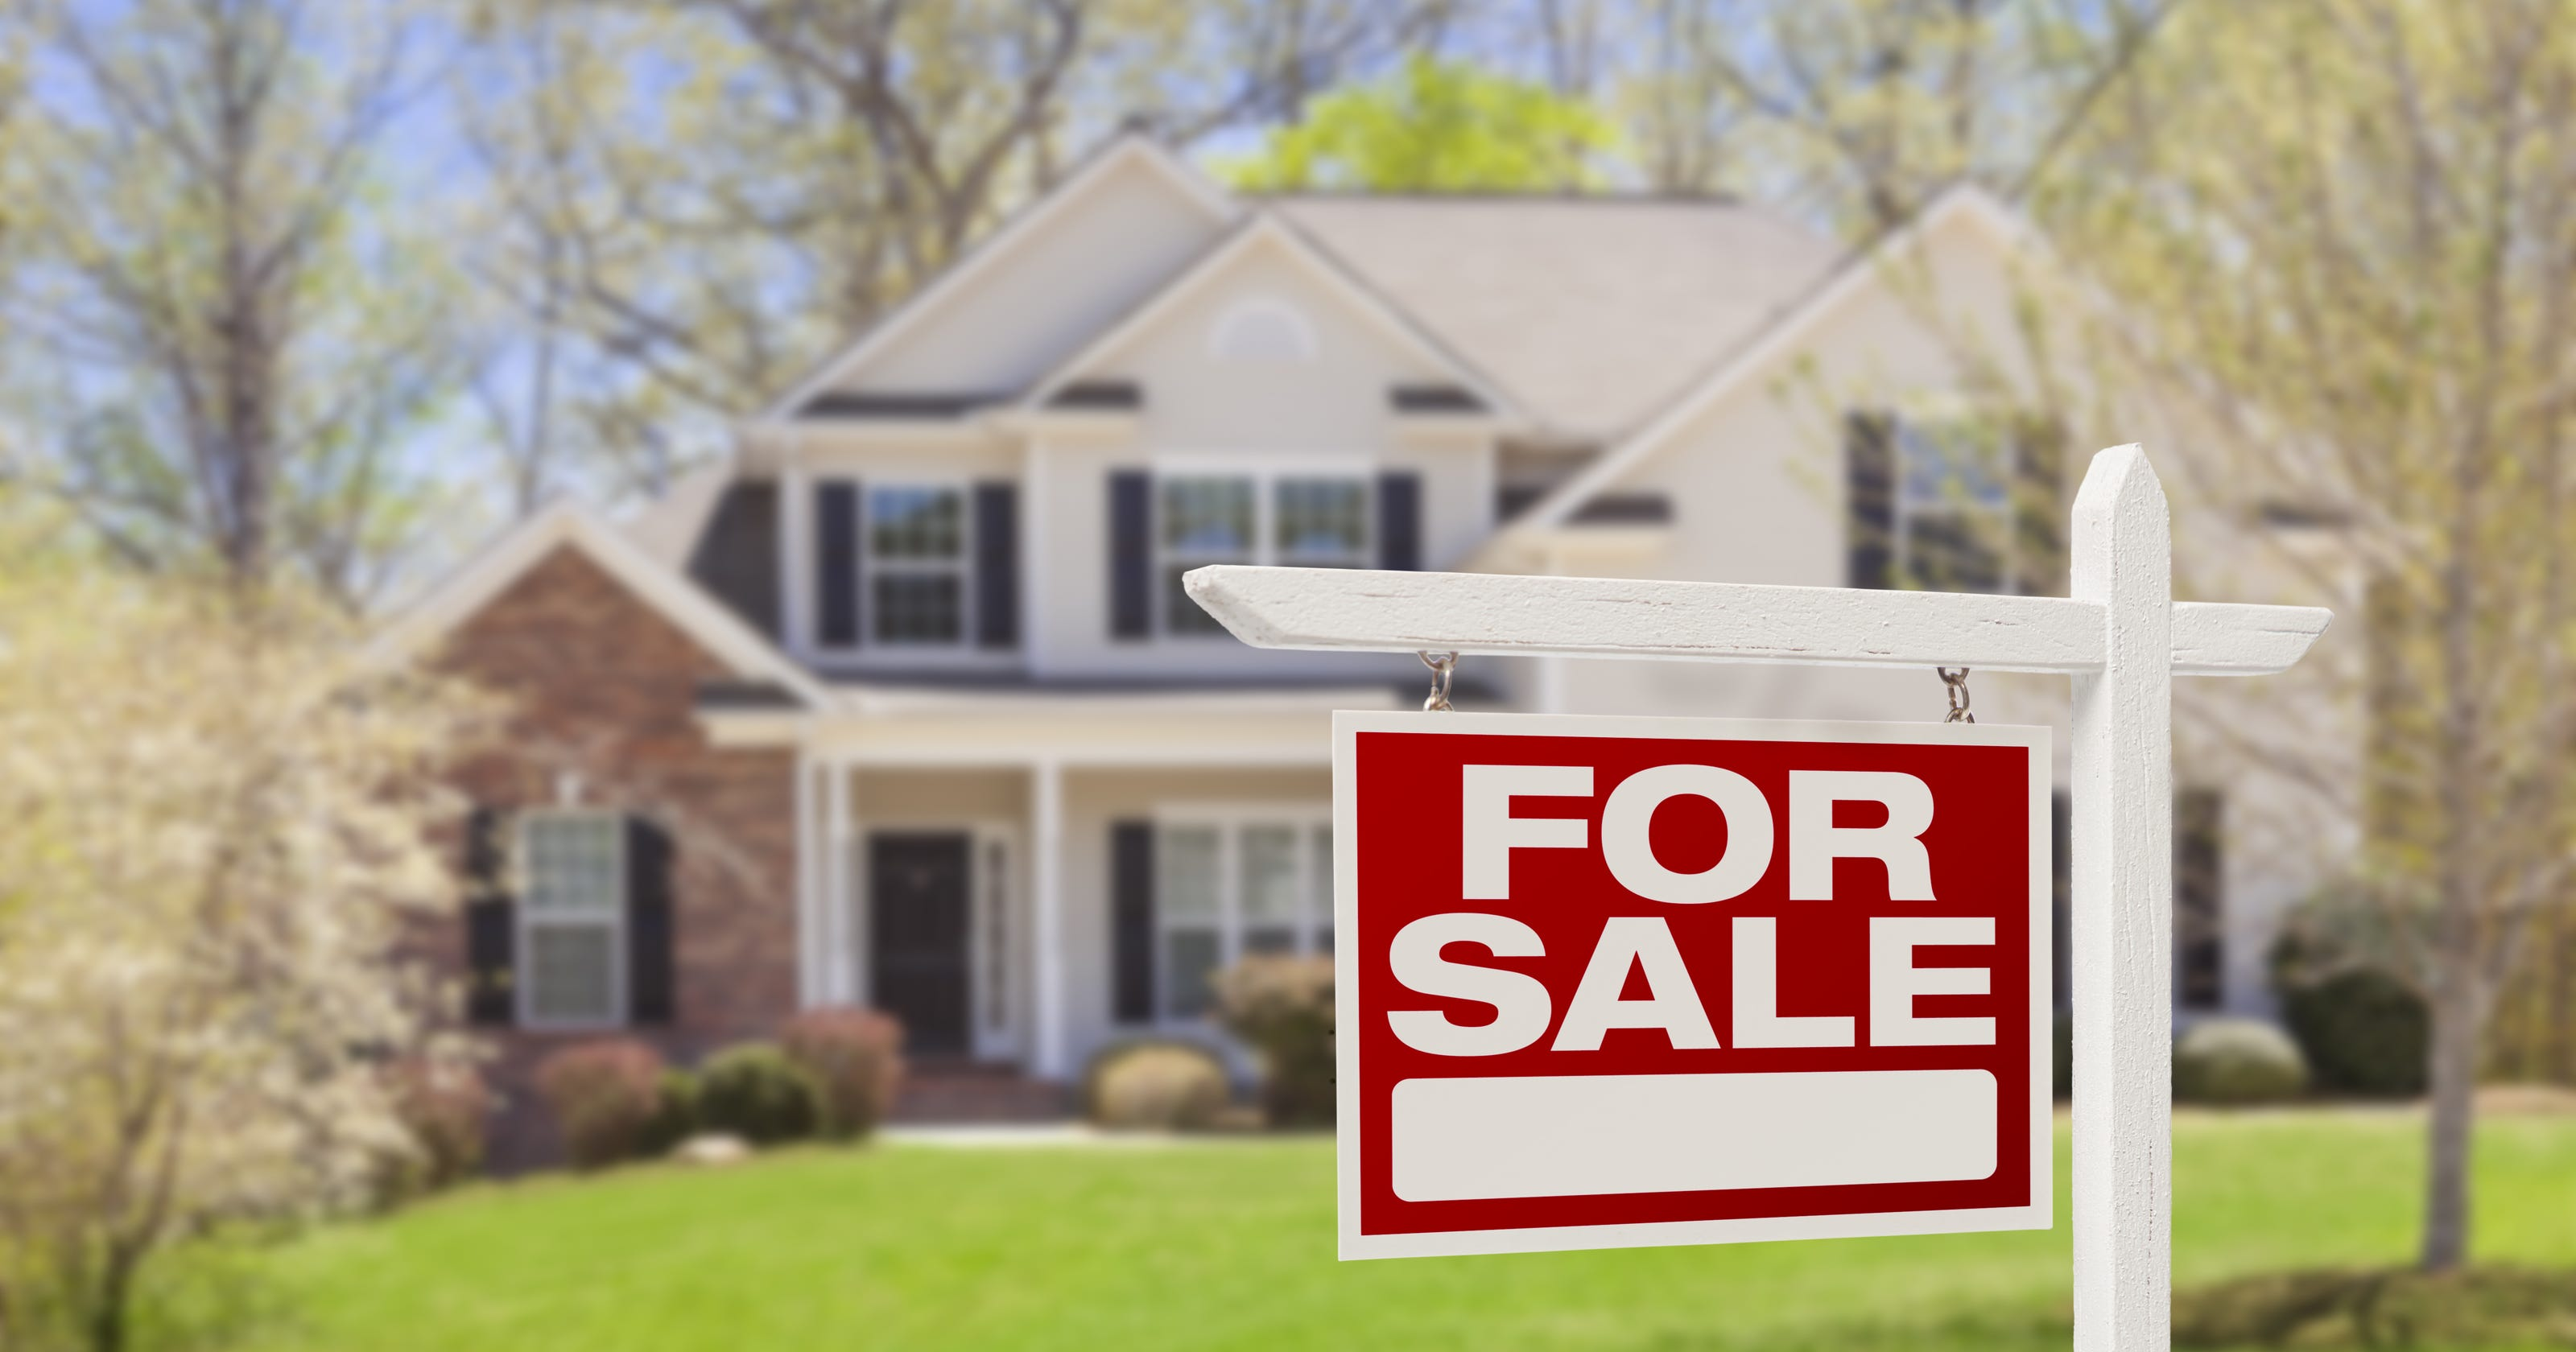 Mortgage interest rates 2018: Rates hit 7-year high, slow